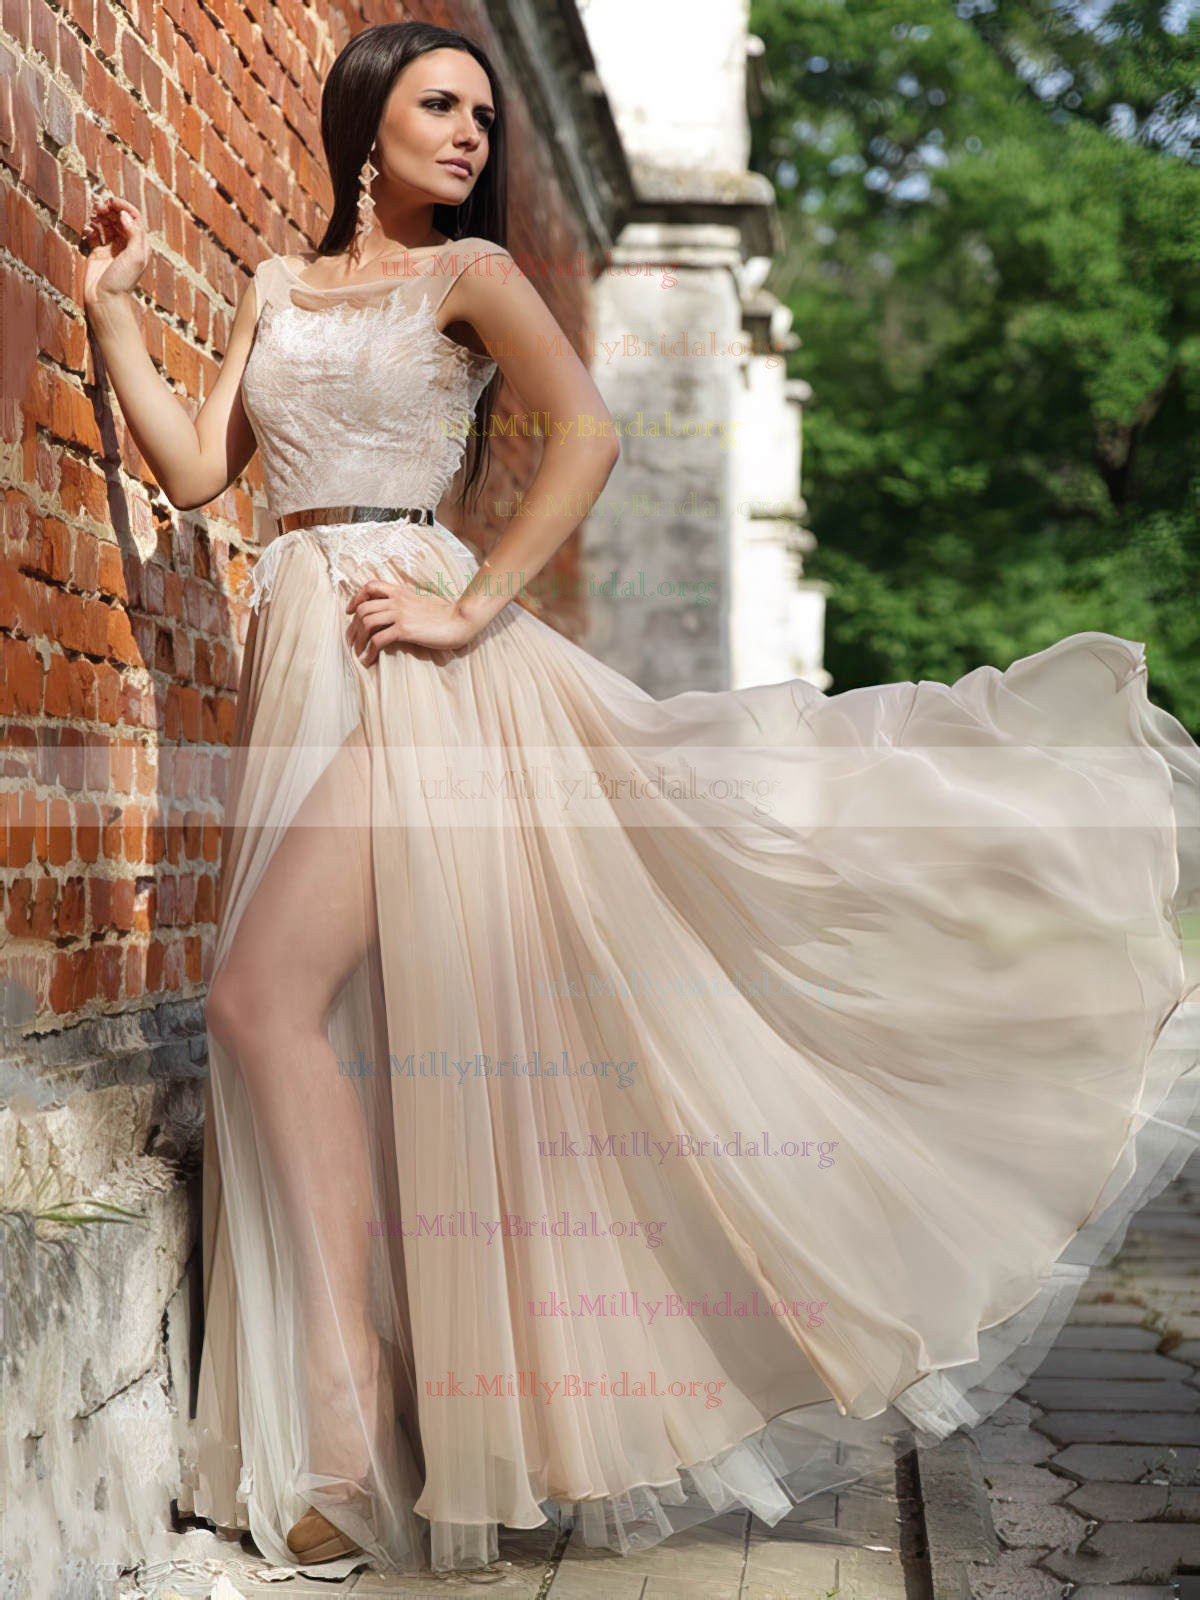 http://uk.millybridal.org/product/a-line-scoop-neck-chiffon-tulle-appliques-lace-floor-length-modern-prom-dresses-ukm020102862-18110.html